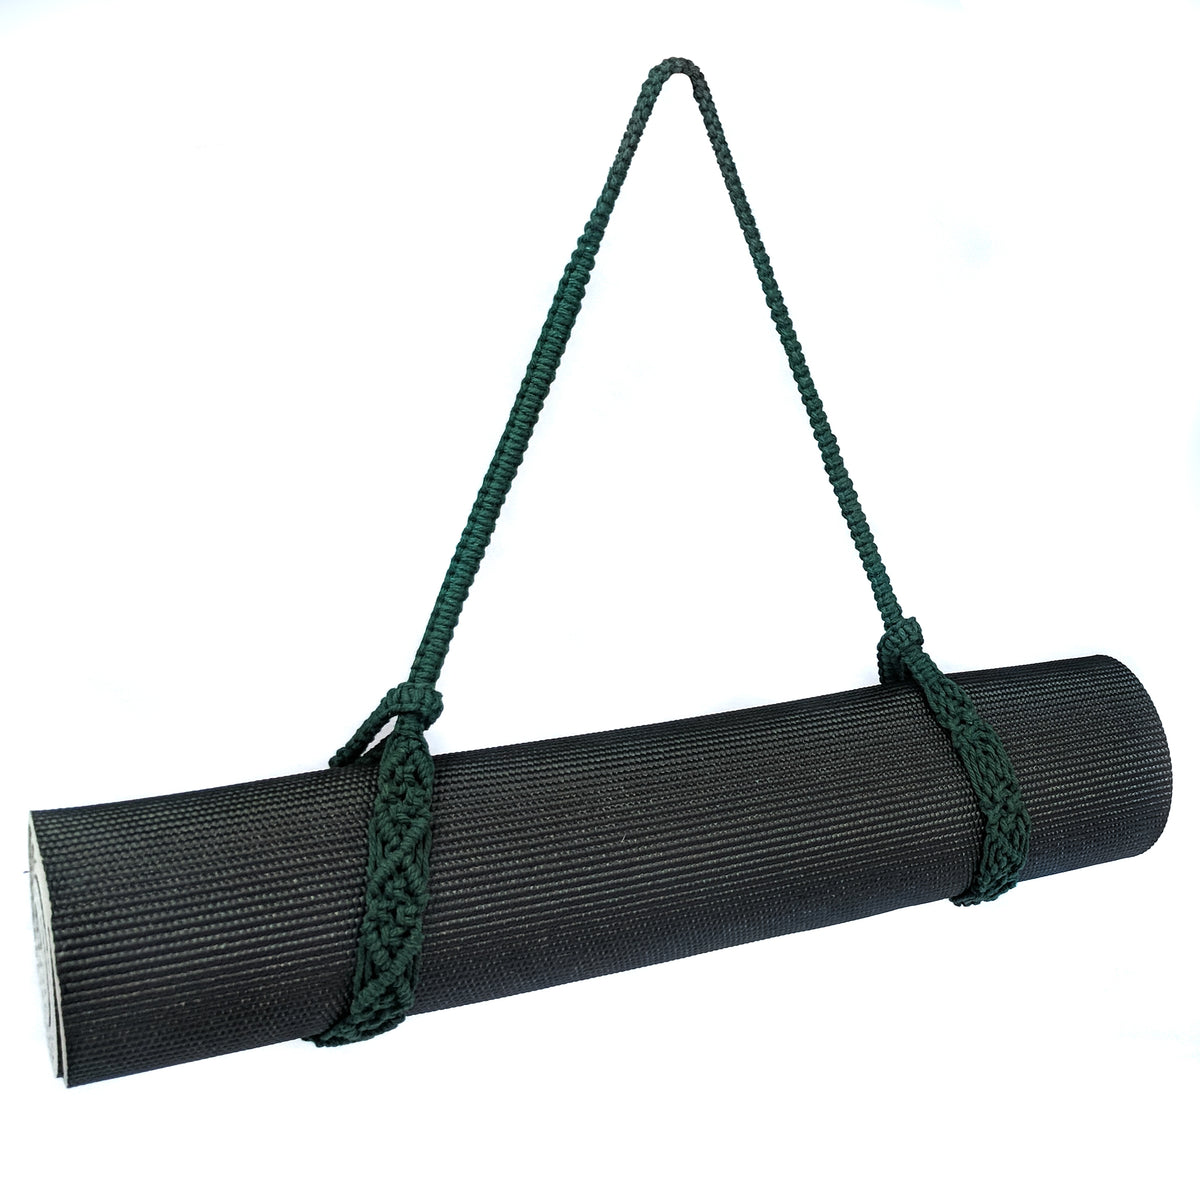 Yoga Mat Macrame Sling Strap - Kindfolk Athletics